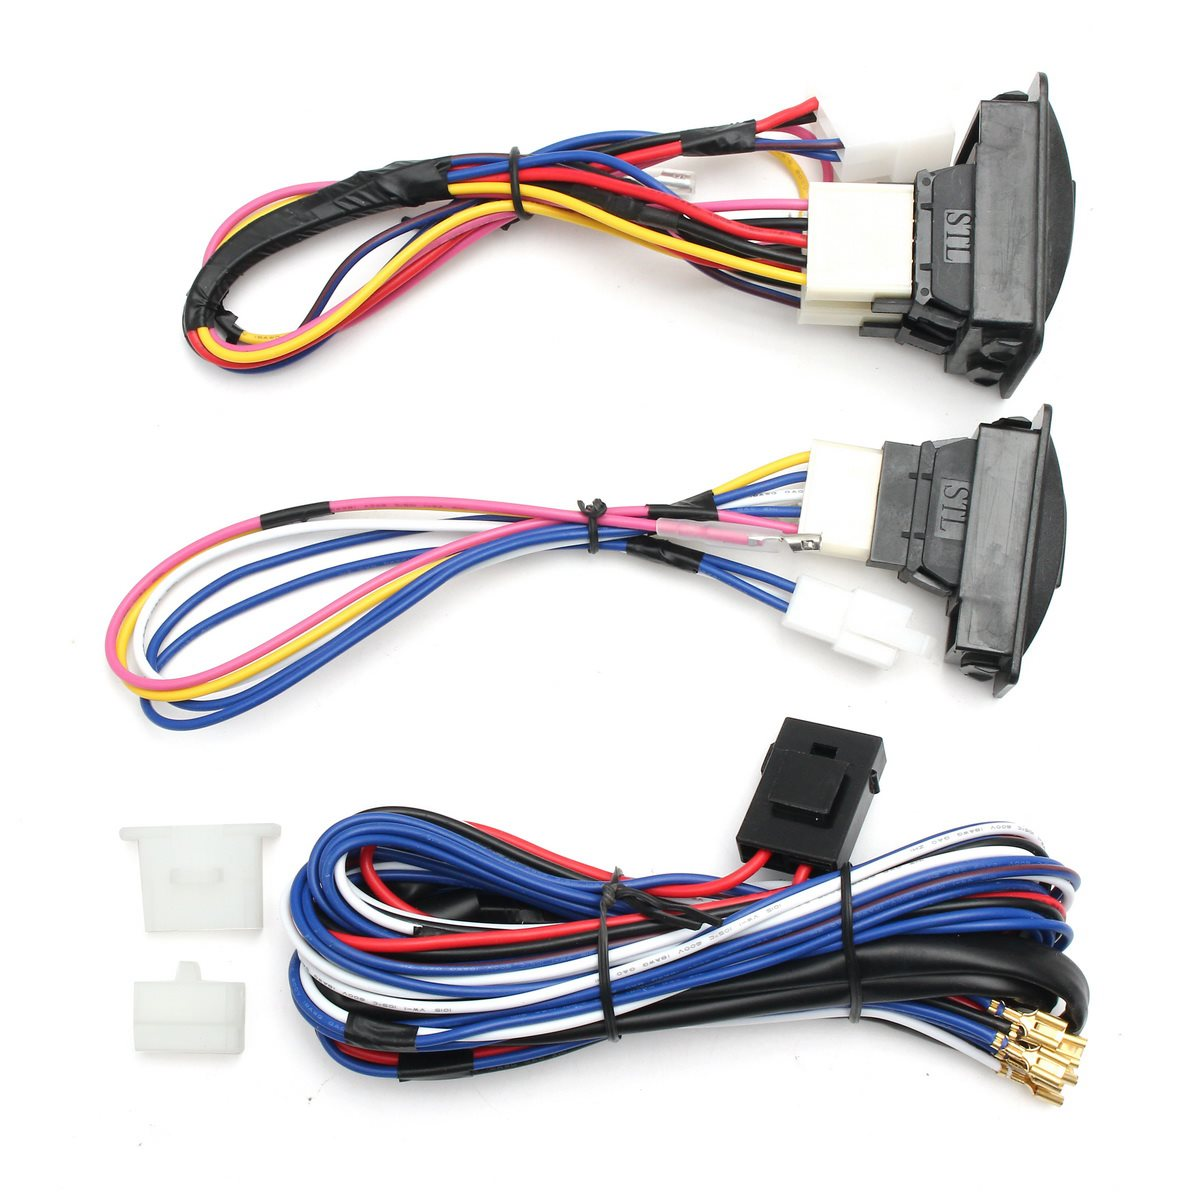 medium resolution of universal 12v power window glass lock rocker lift switch wiring harness kits for chevrolet ford hyundai nissan toyota vw in car switches relays from